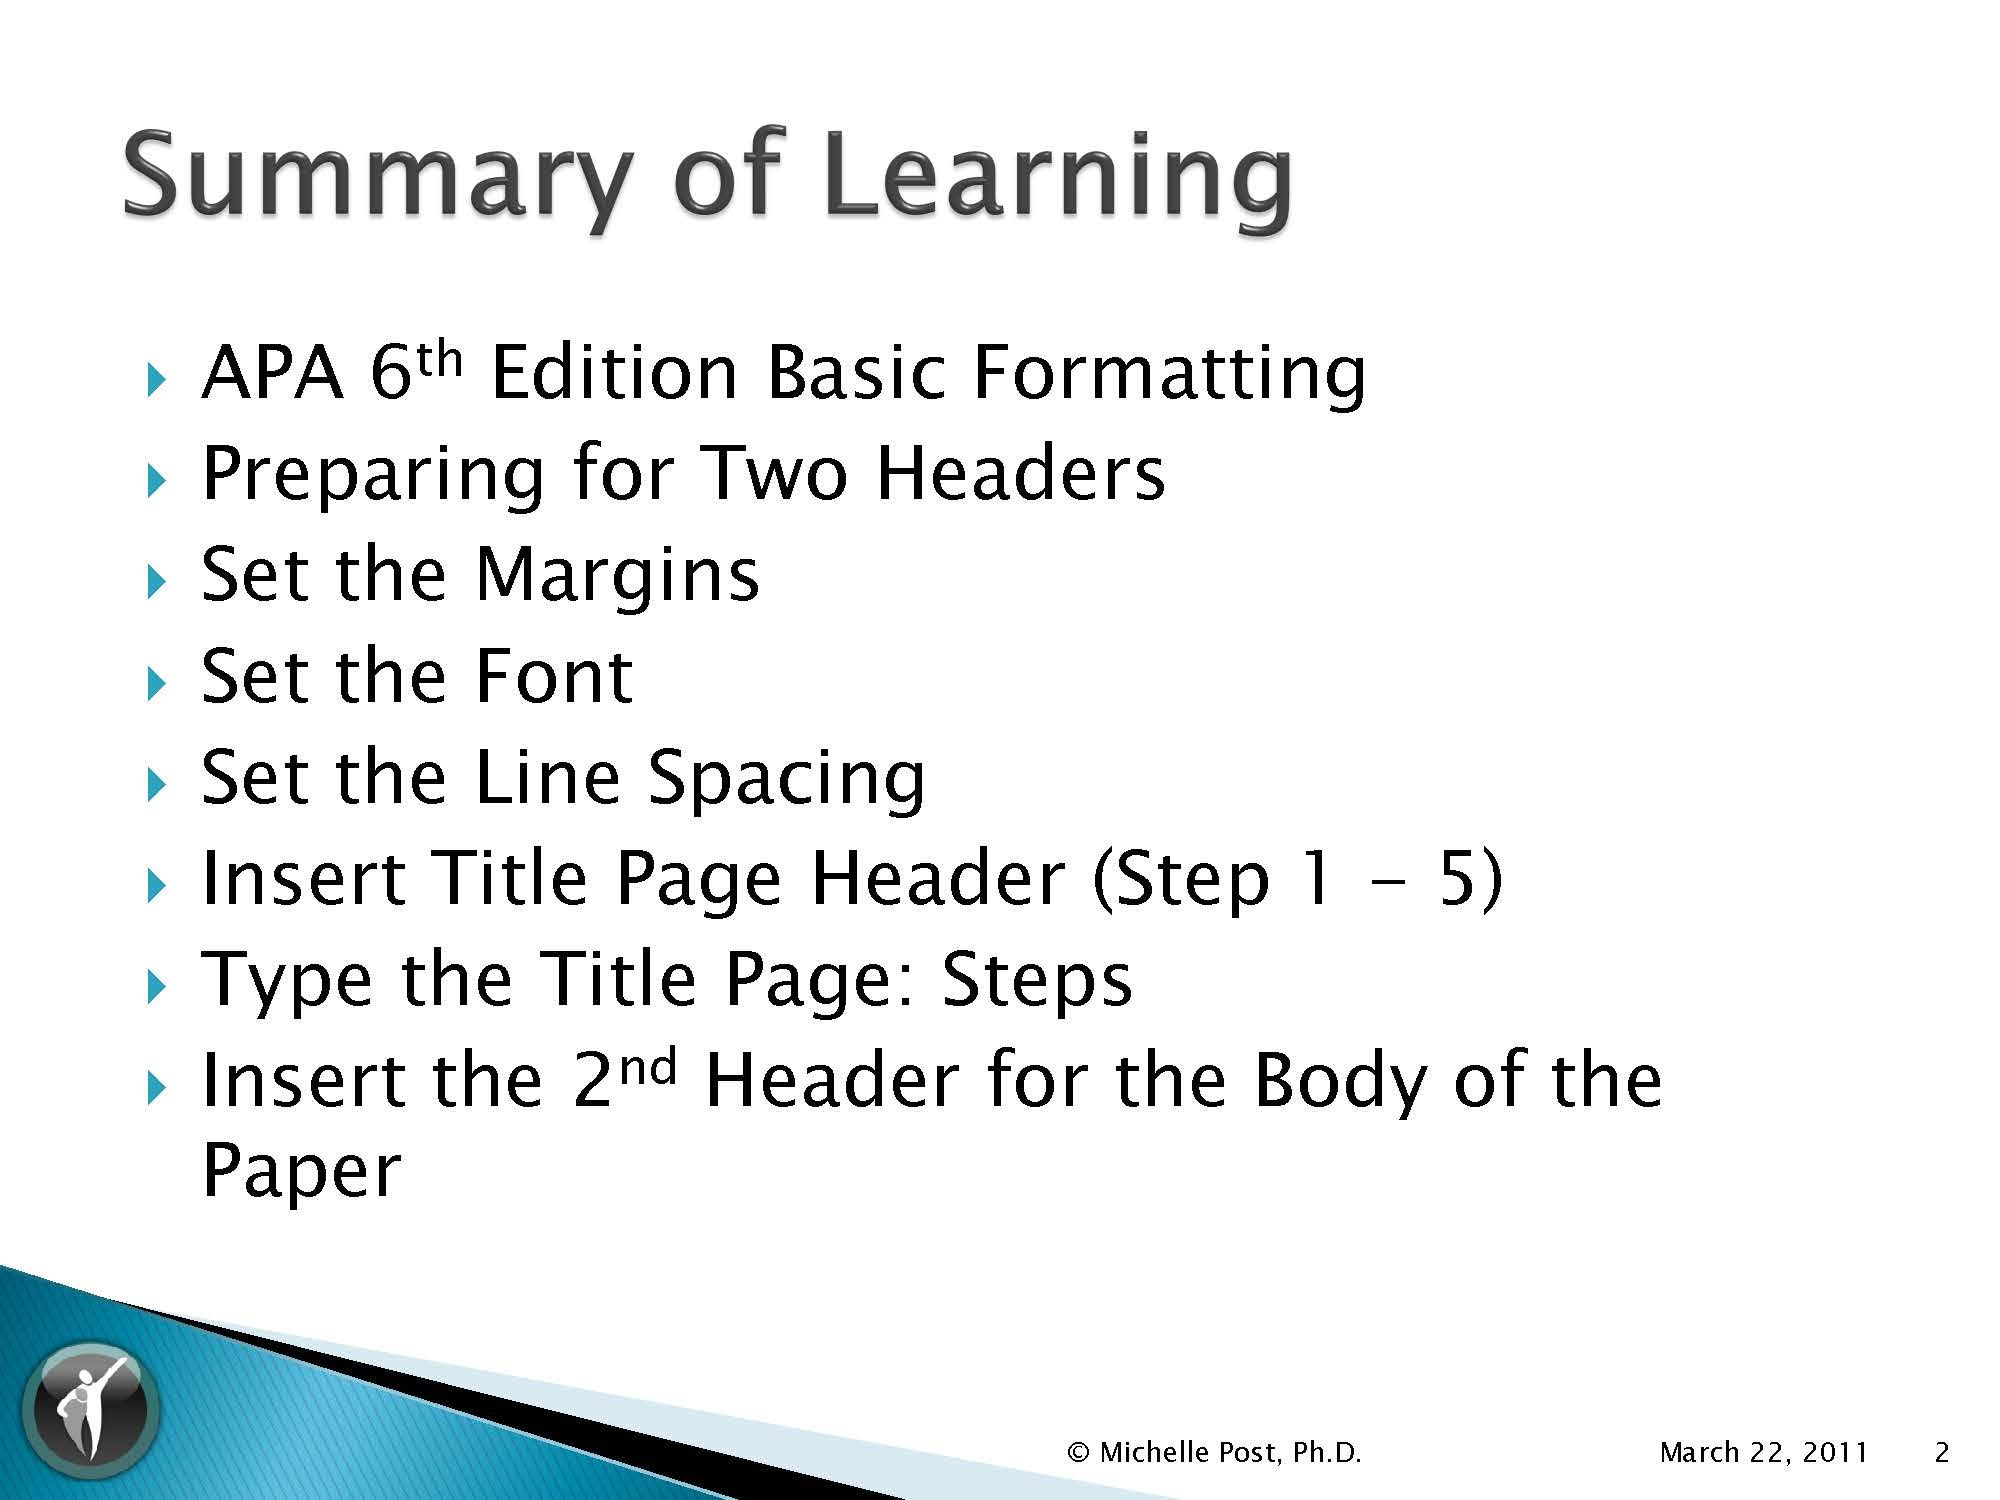 apa template for word 2007